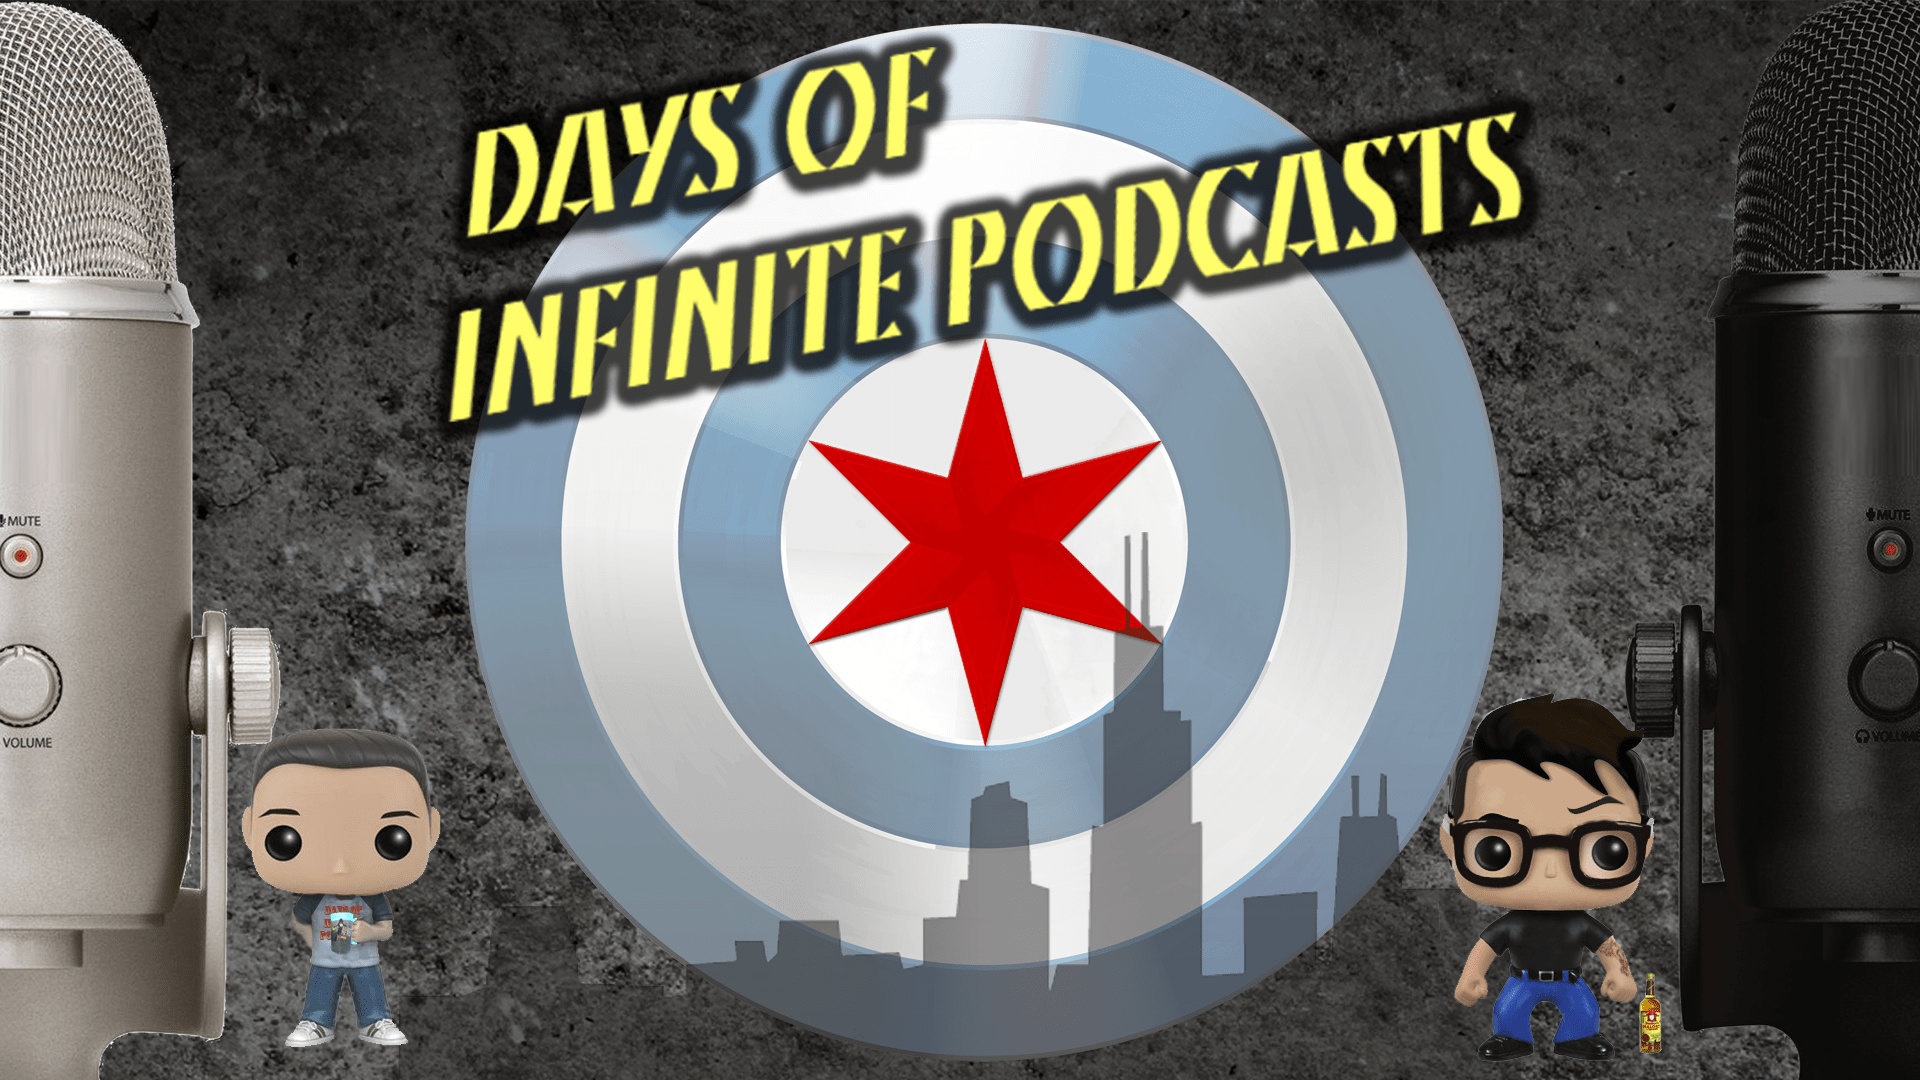 Days of Infinite Podcasts